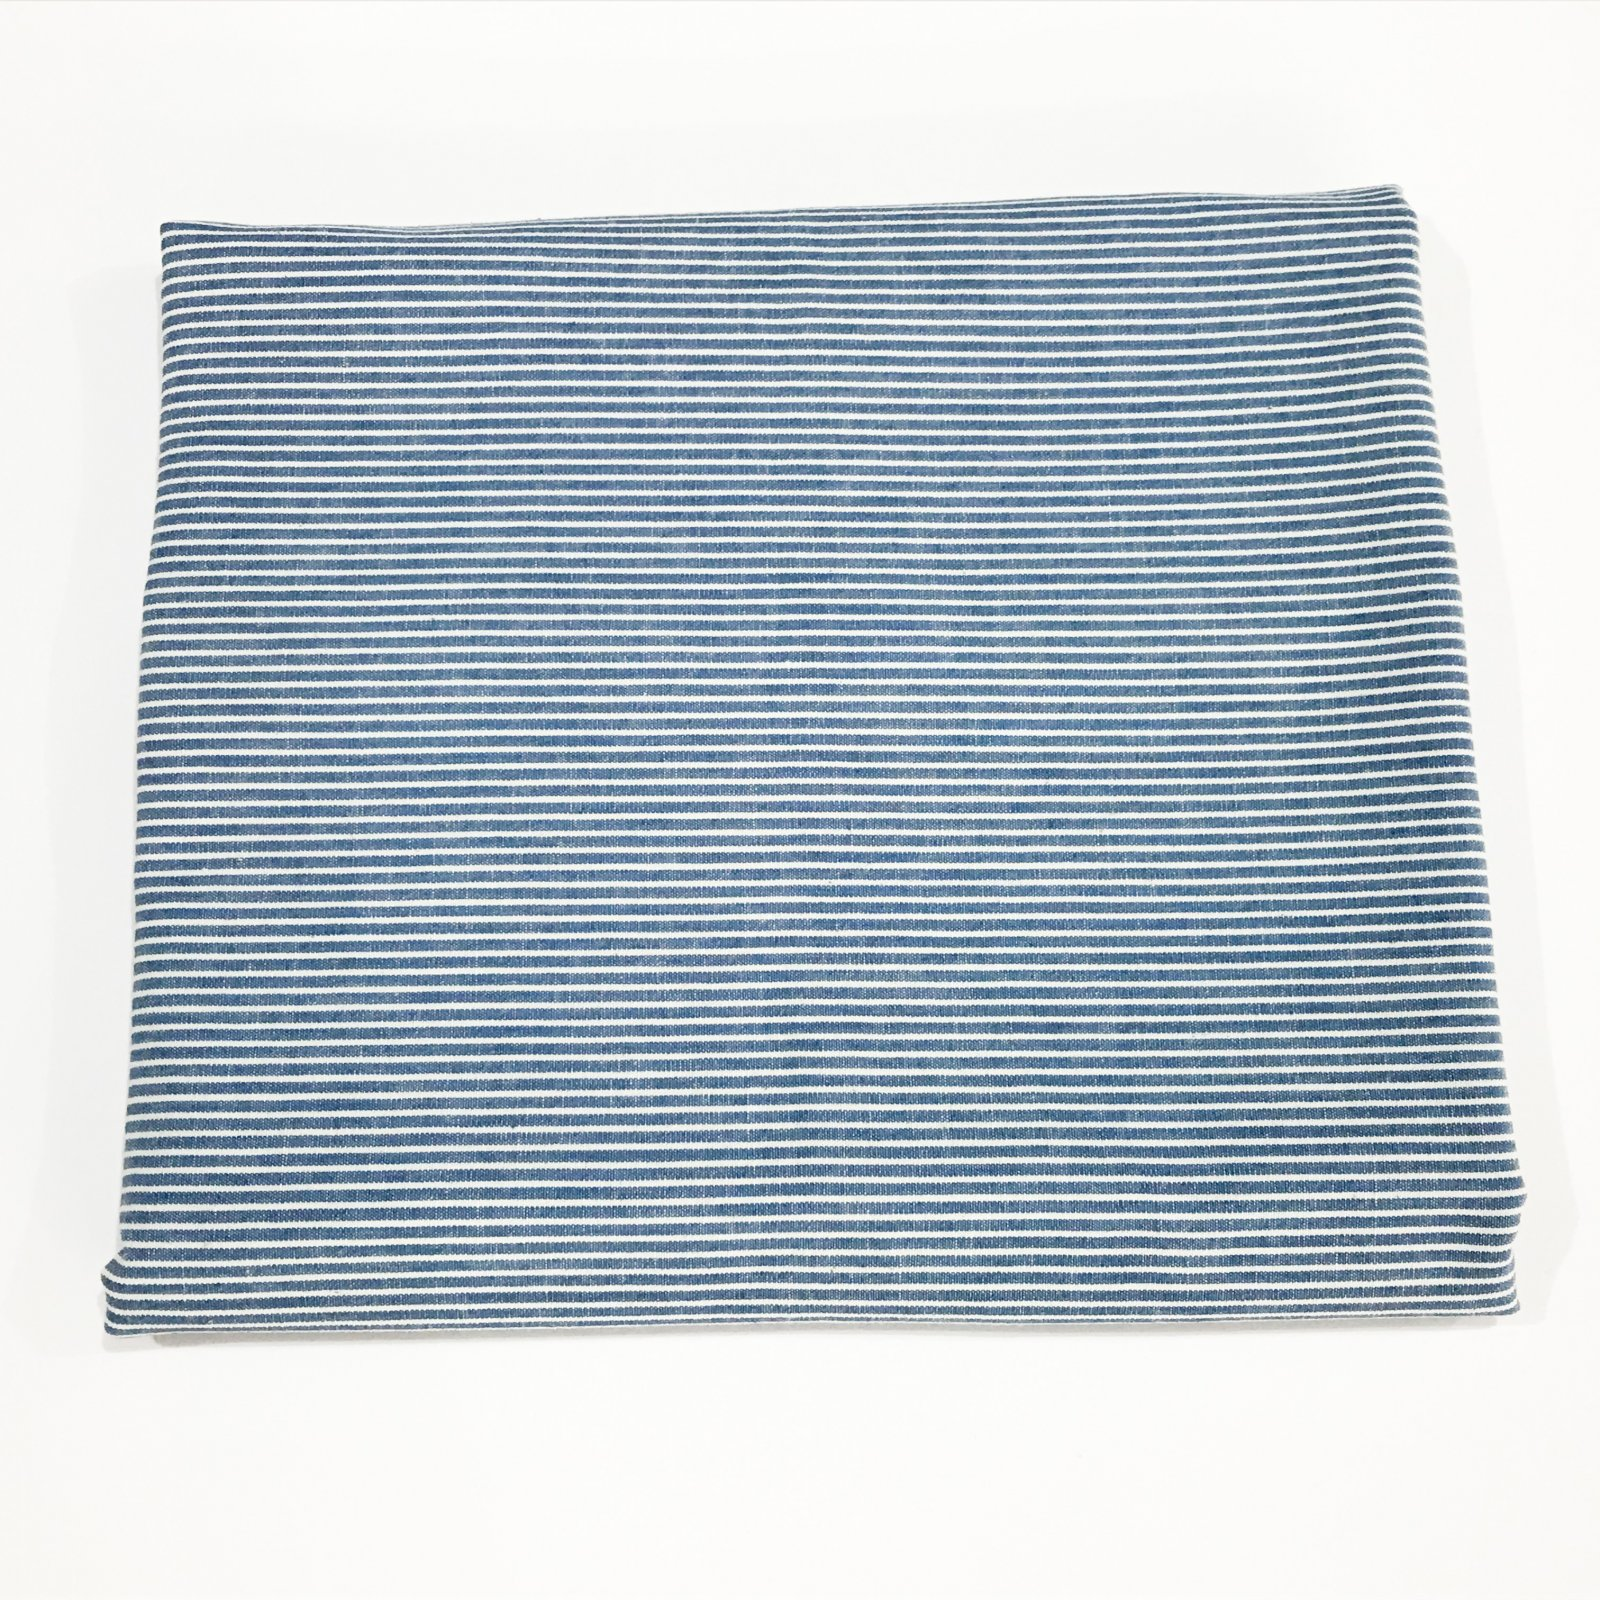 1 yard + 35 inches - Cotton Pale Blue Striped Chambray